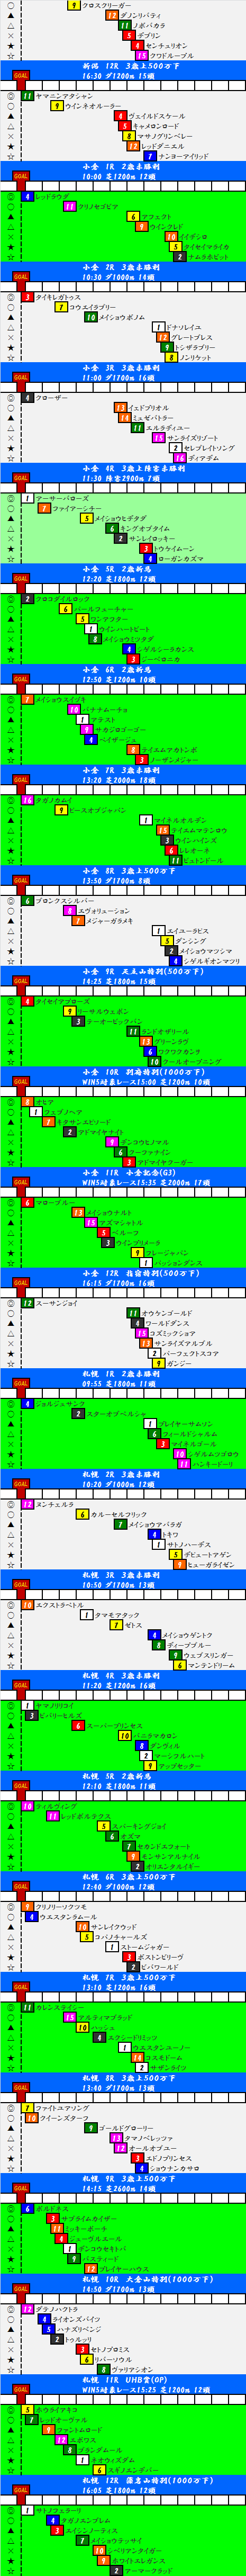 2015080902.png